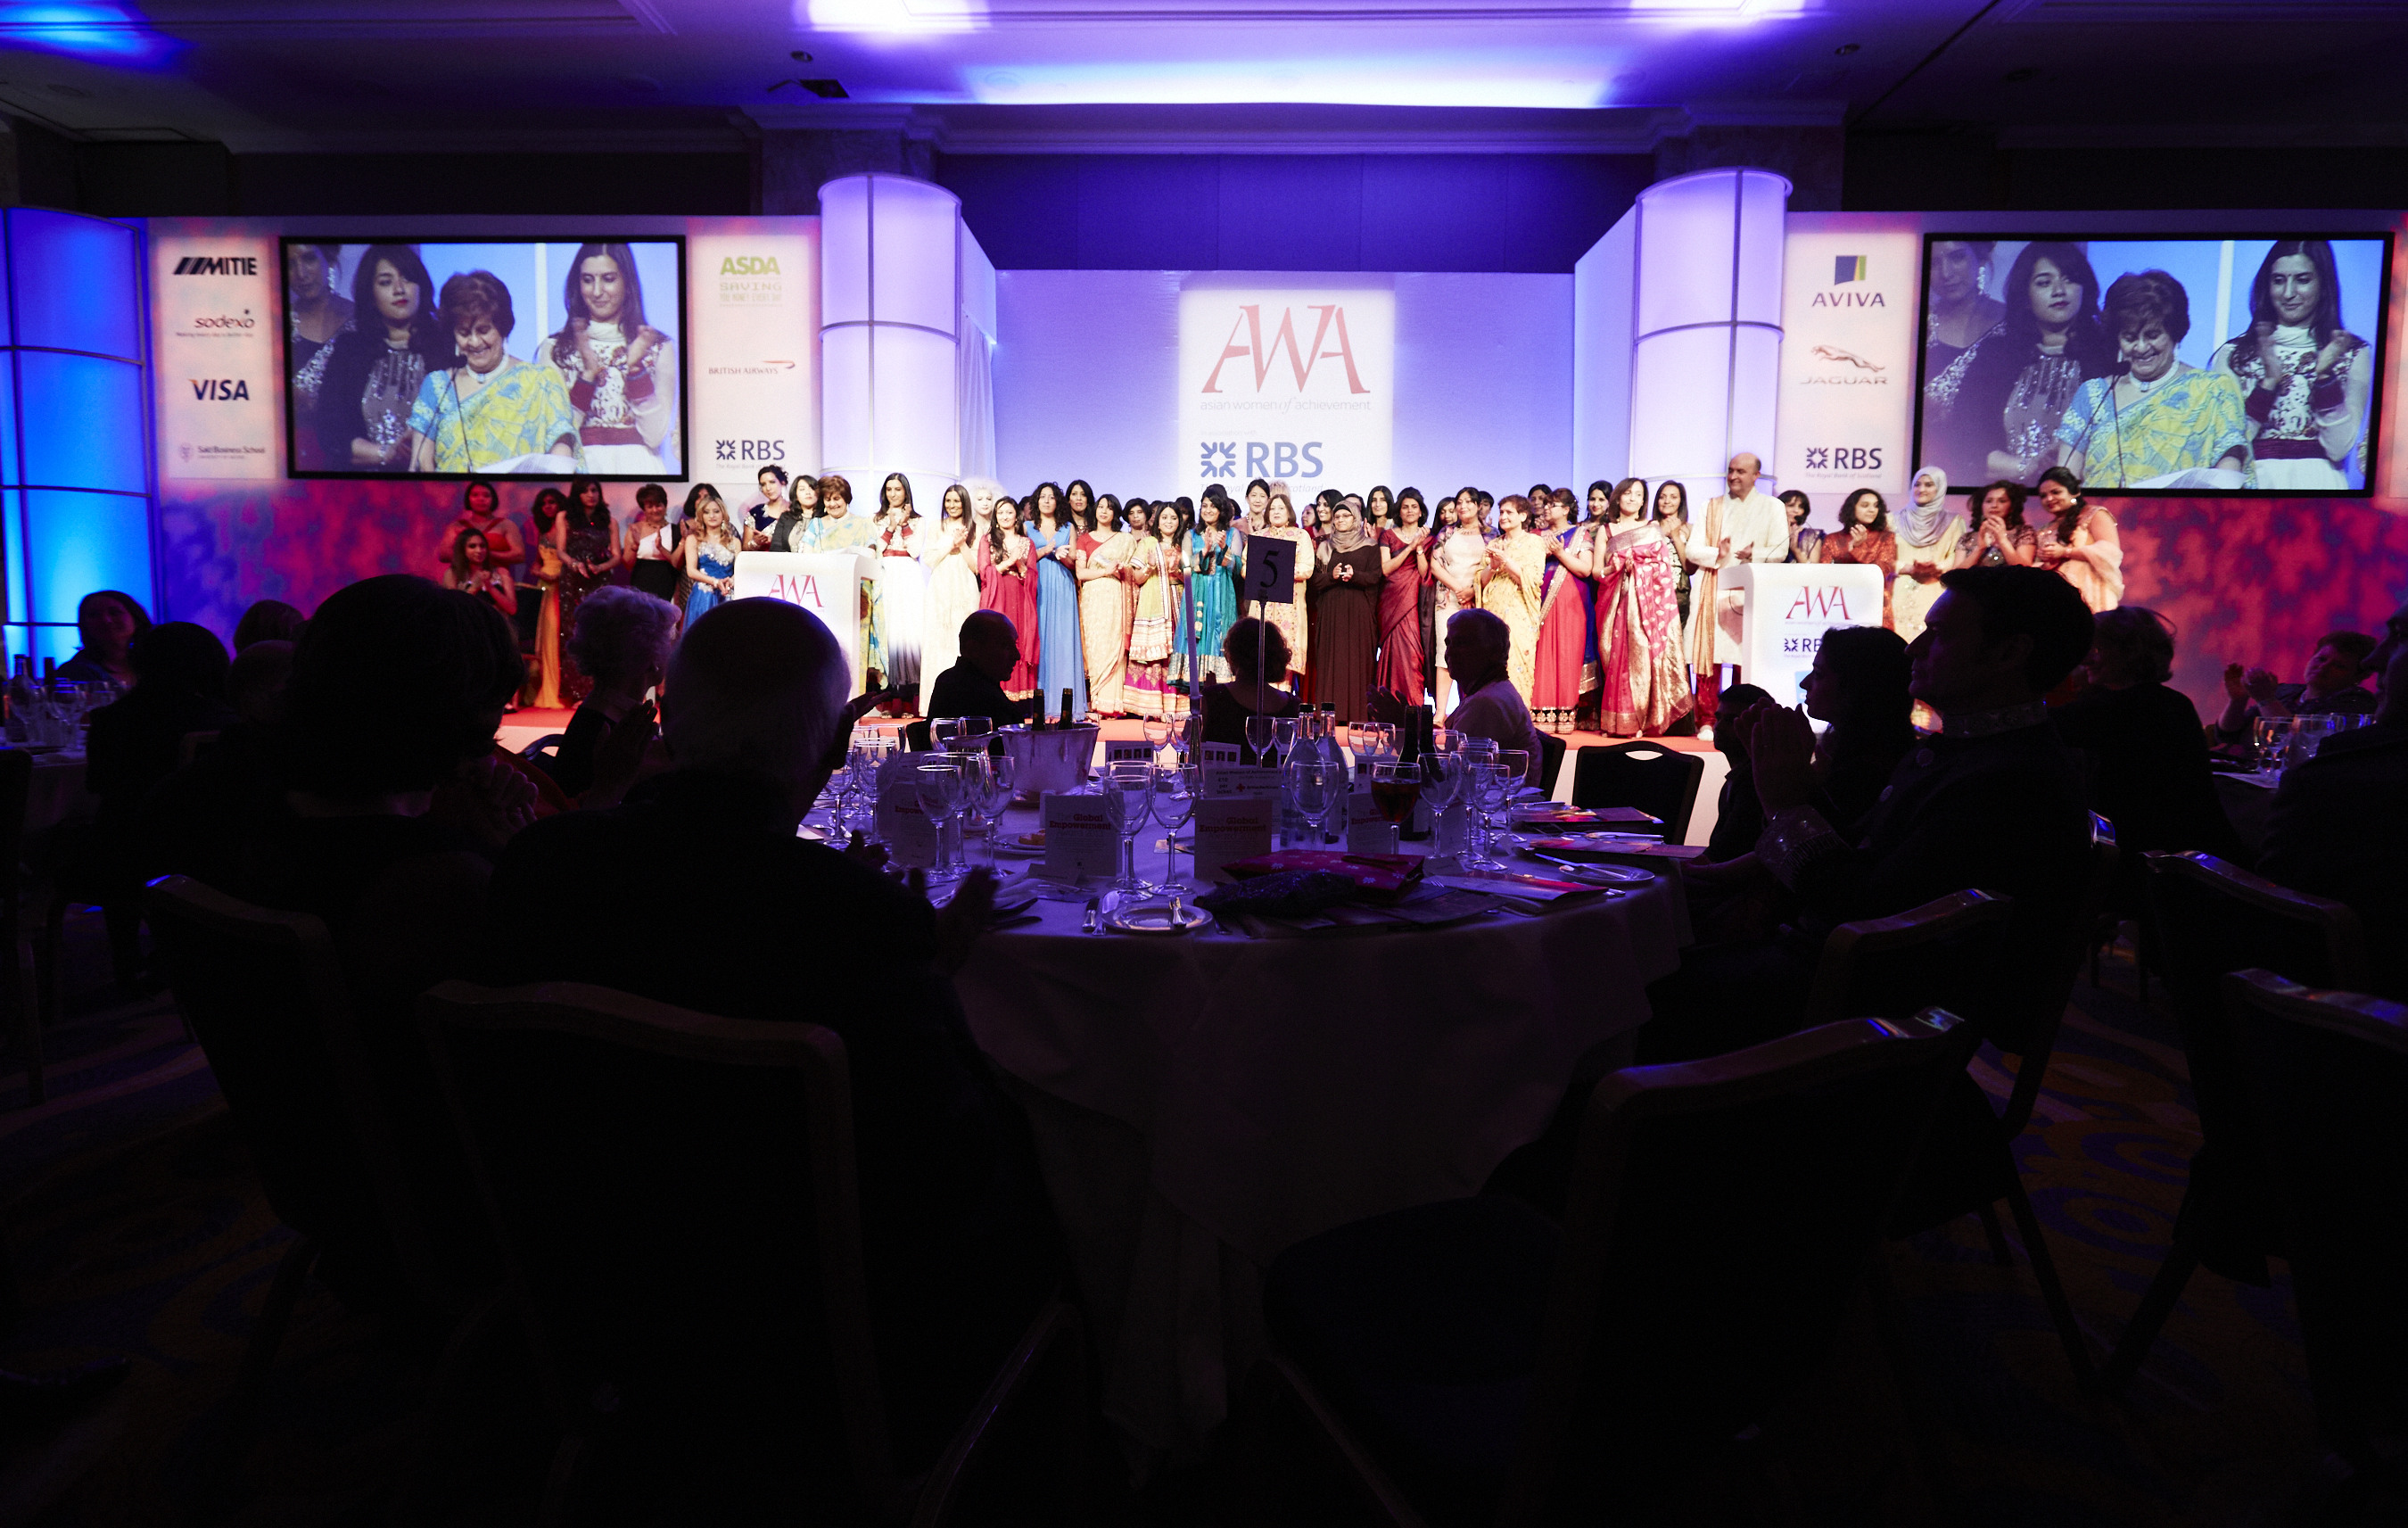 The 15th Asian Women of Achievement Awards is just 2 weeks away